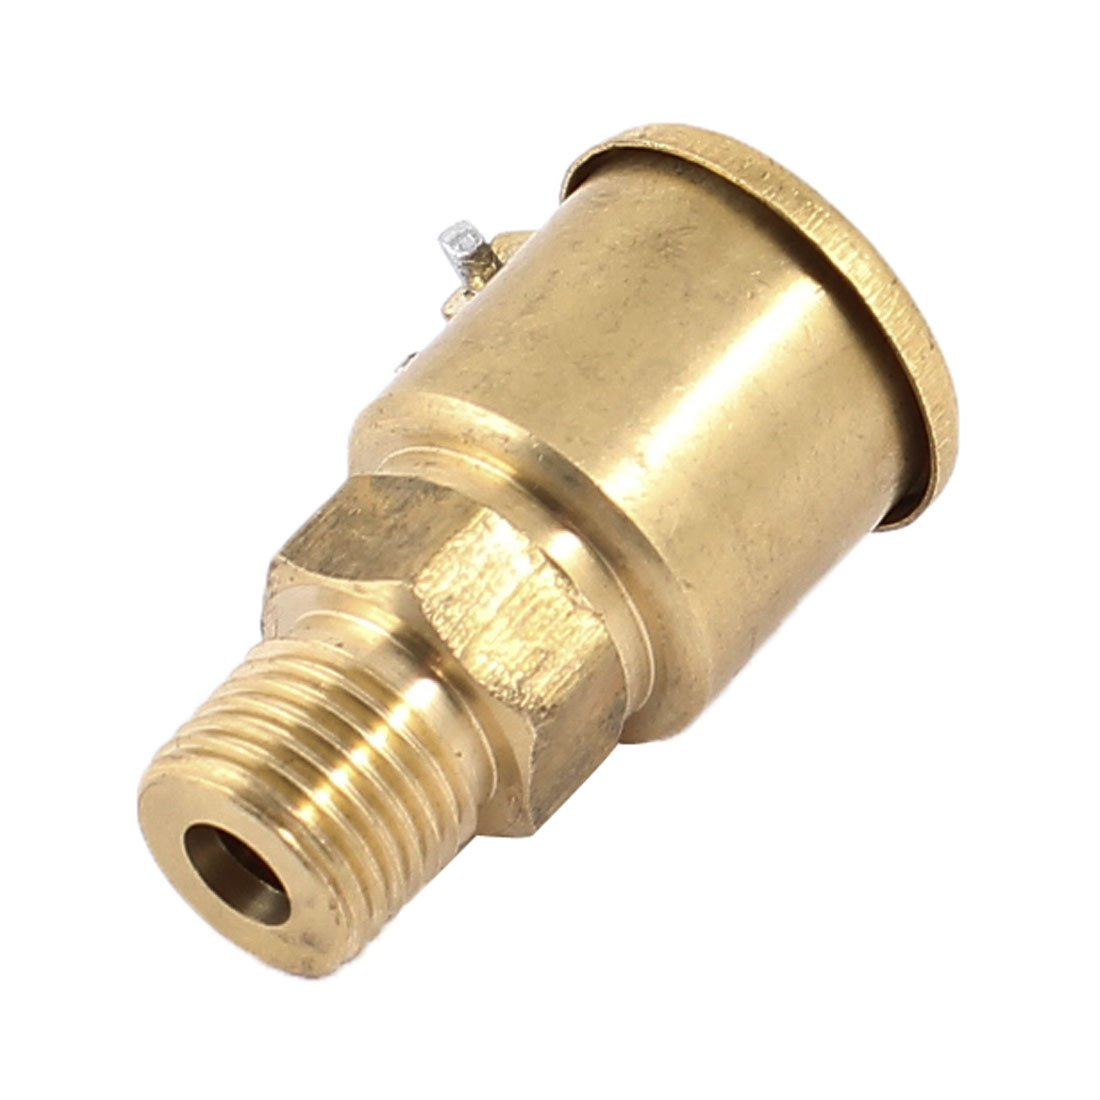 10mm Thread Dia Brass Oil Lubricating Spring Cap Copper Grease Cup